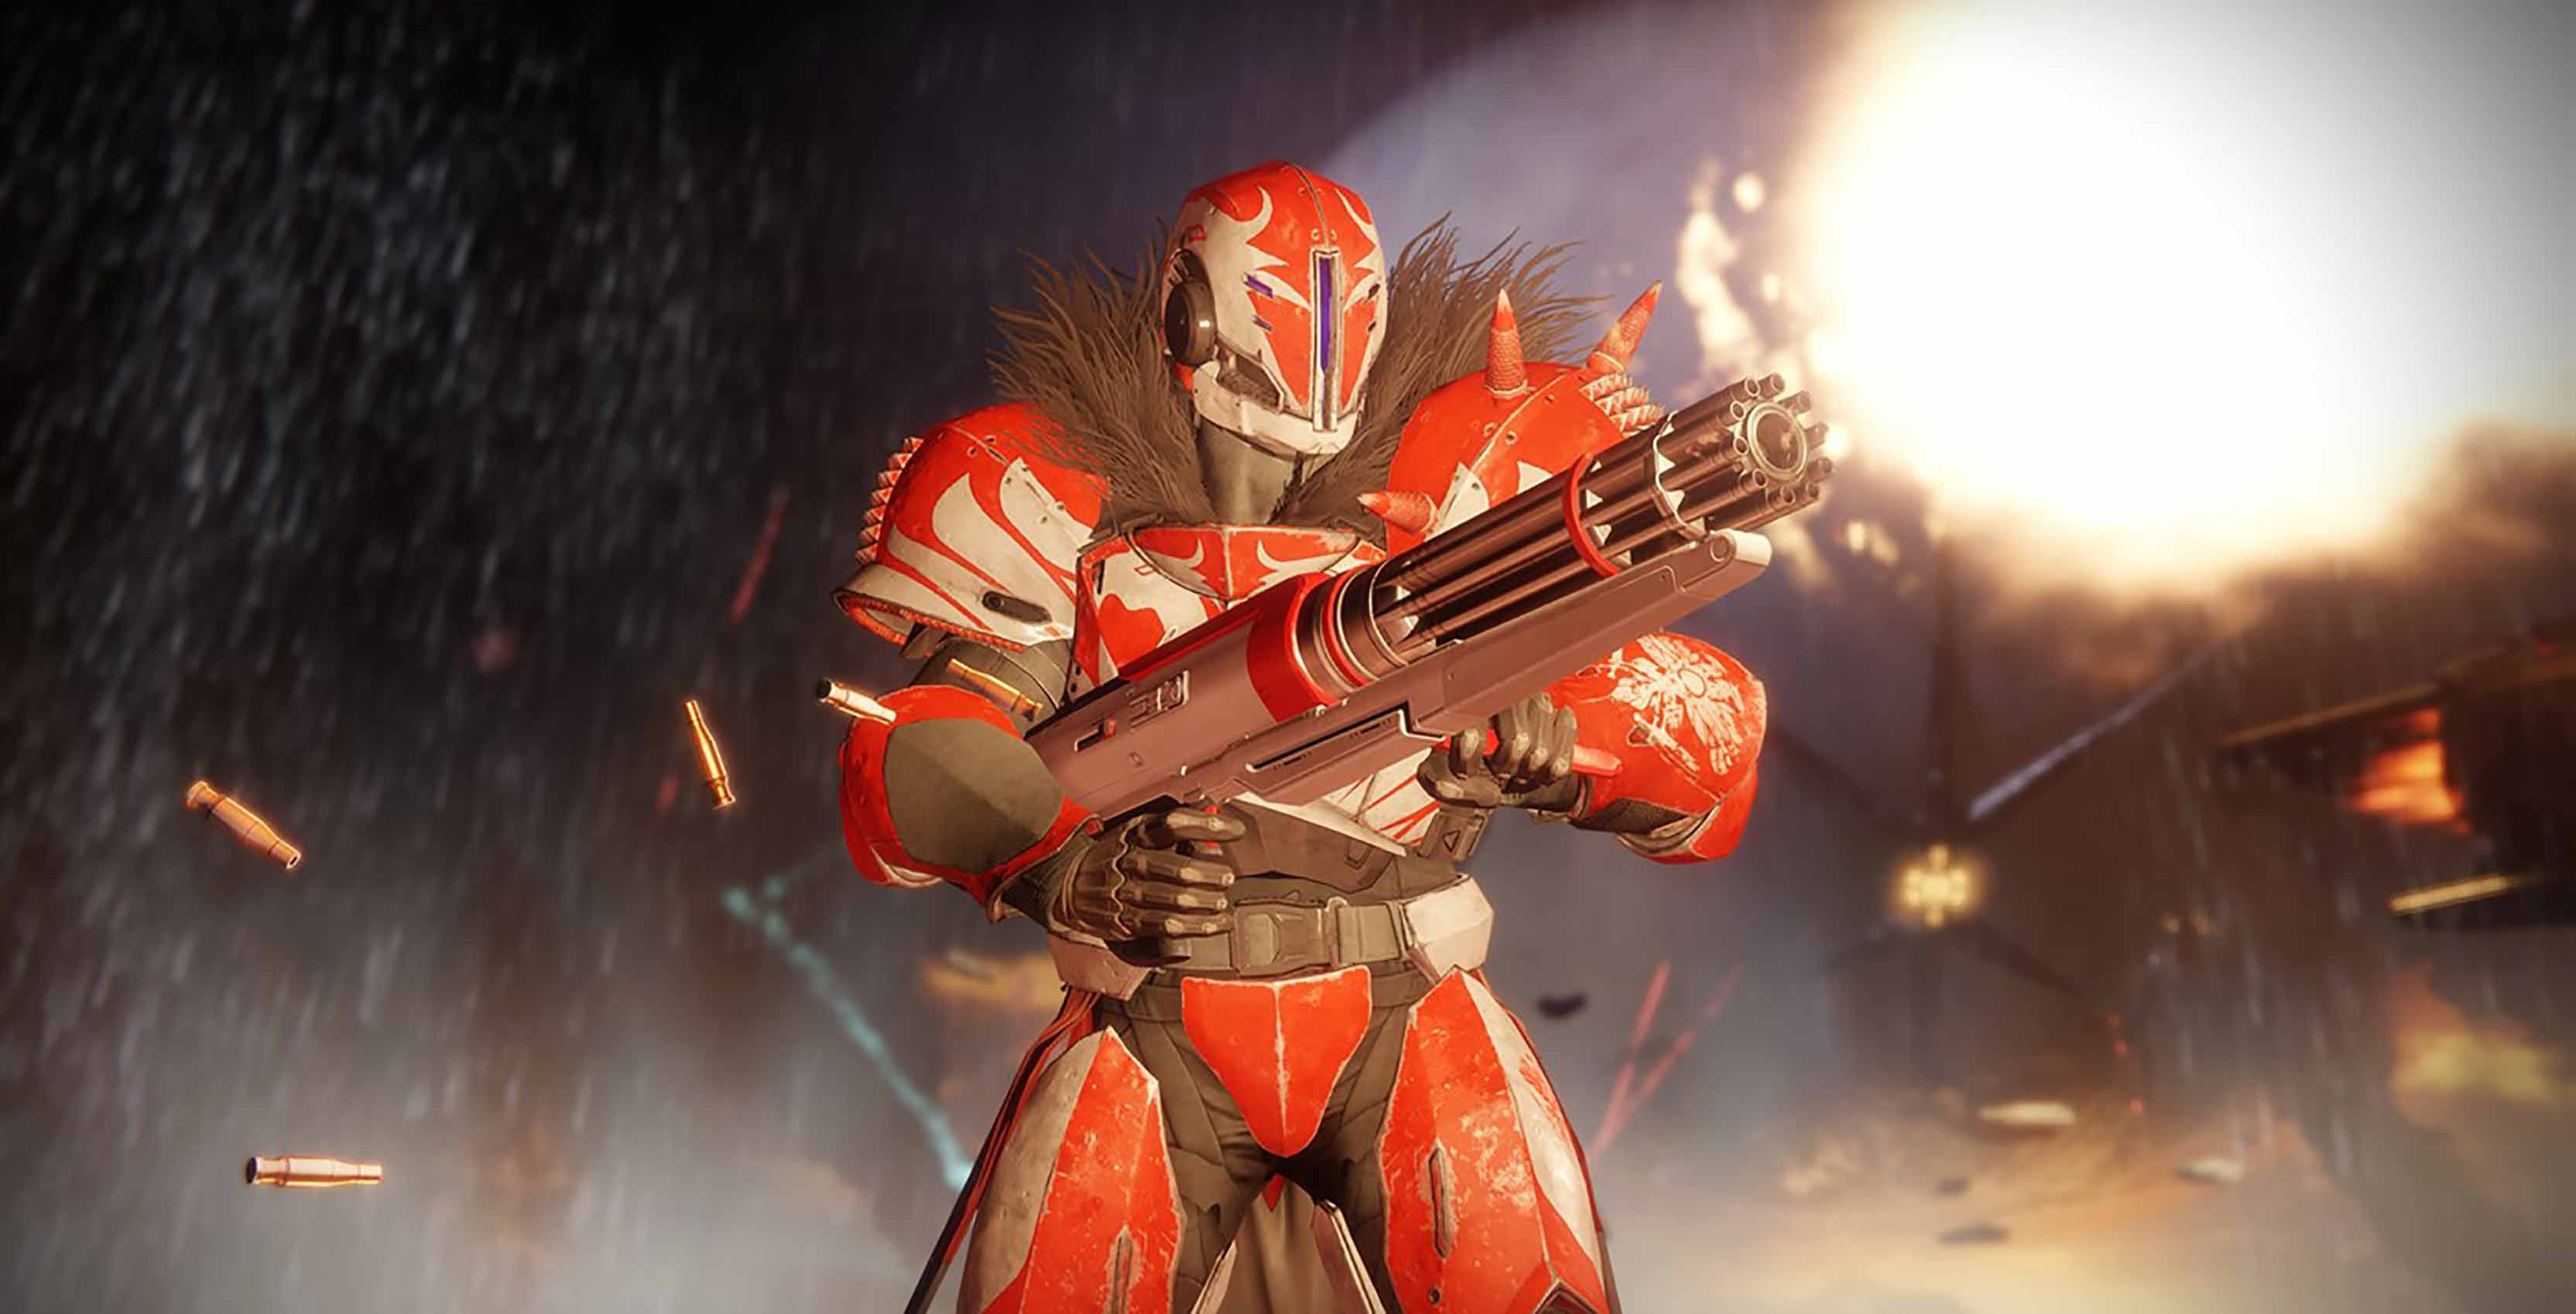 Bungie to launch Destiny 2 cross-save feature on August 21